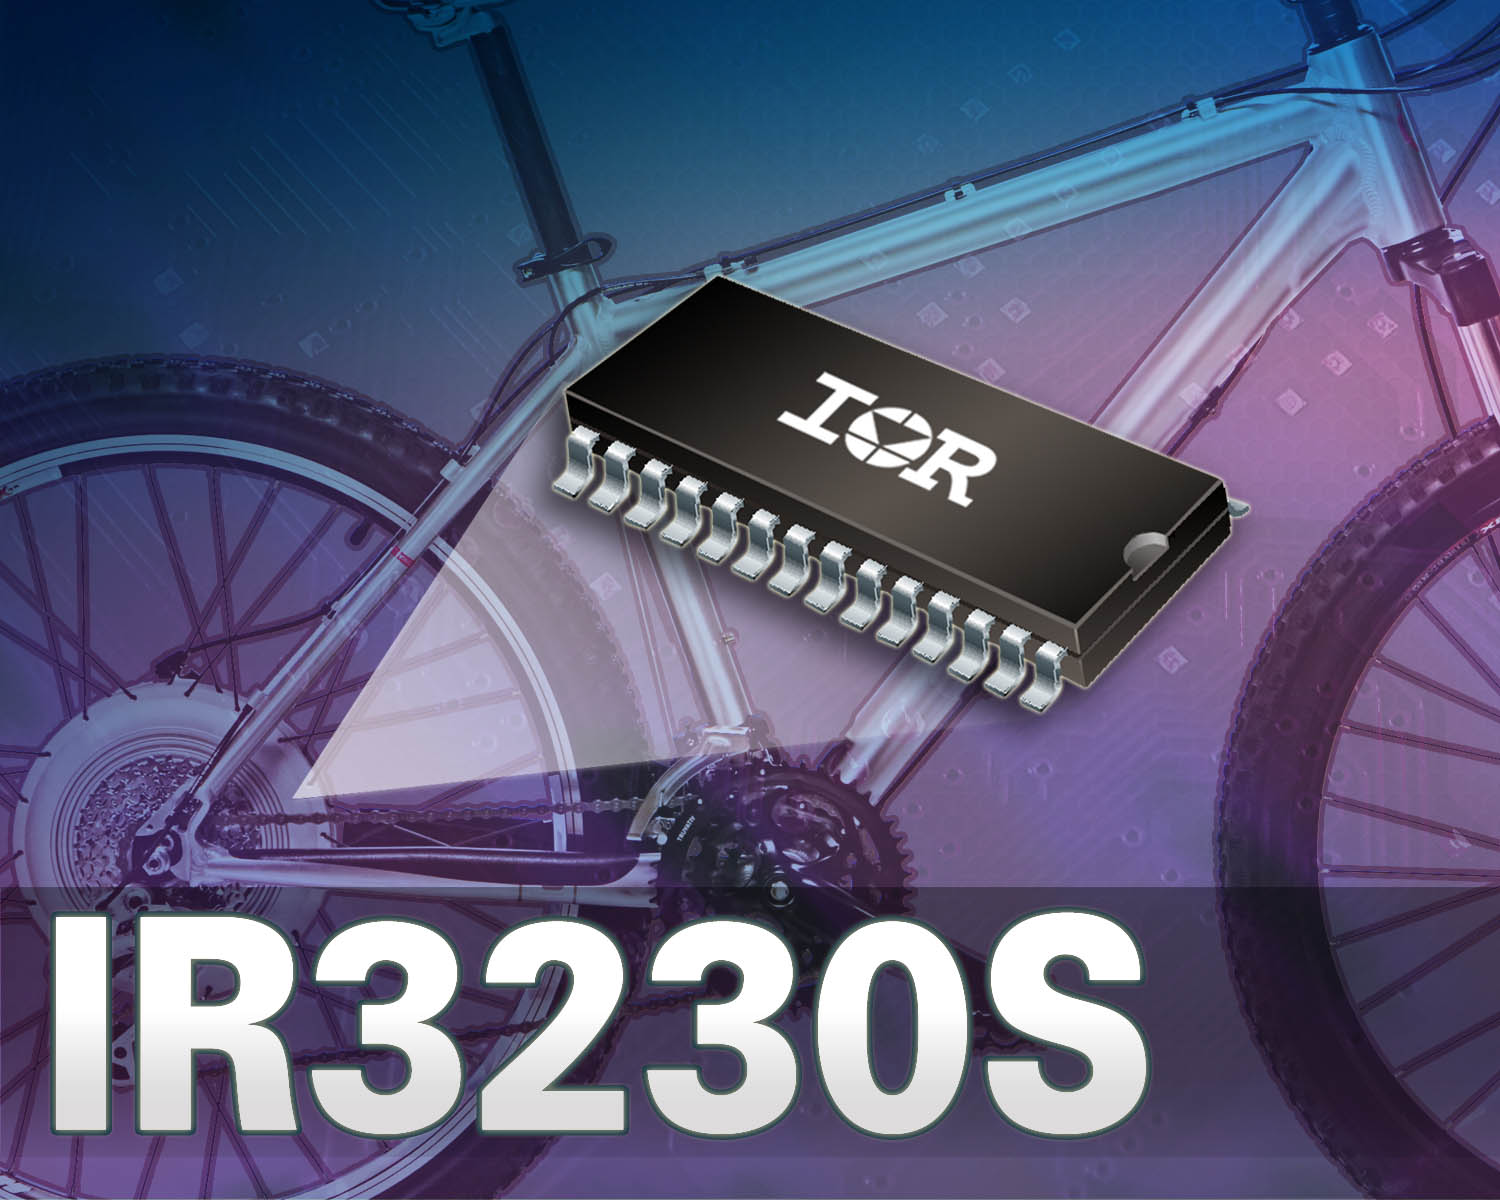 Power Systems Design Psd Information To Your Designs Rgb Led Strip Control Pic18f2550 Mosfet Driver Circuit Serit Ir Introduces Ir3230spbf Three Phase Gate Drive Ic For Ebike Inverters